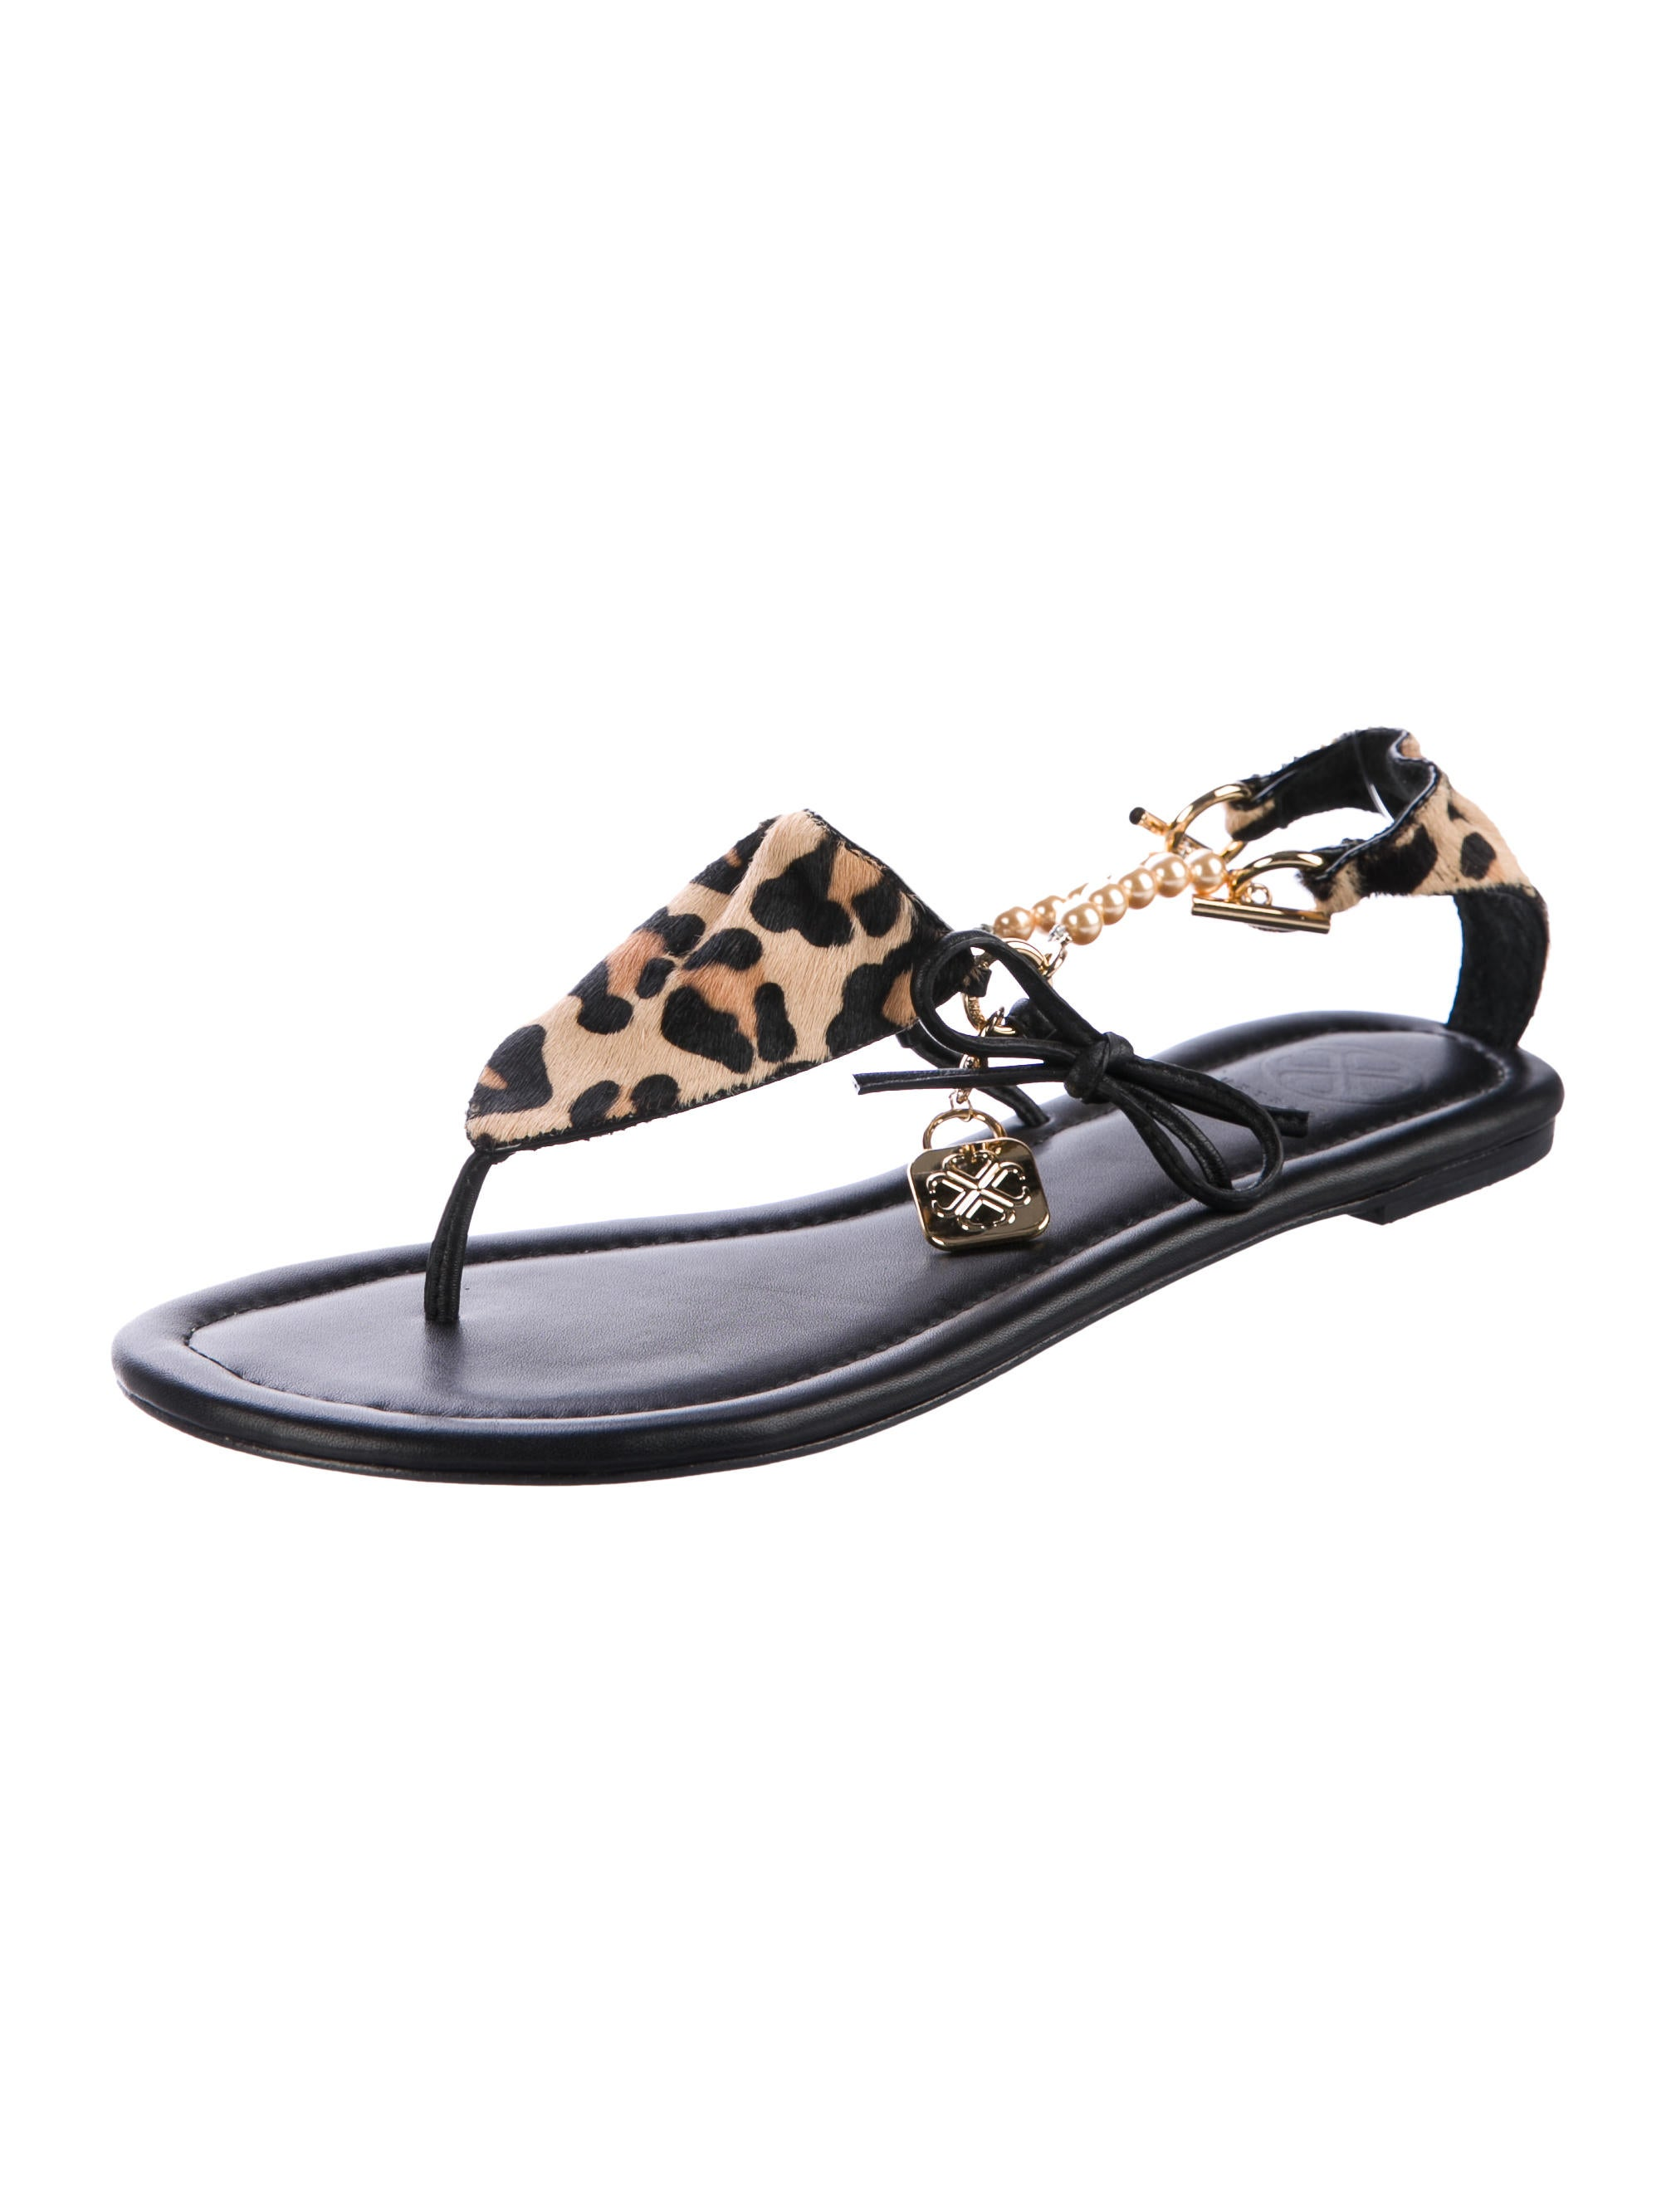 discount outlet outlet real Luxtrada Safari Ponyahir Sandals YdfOV